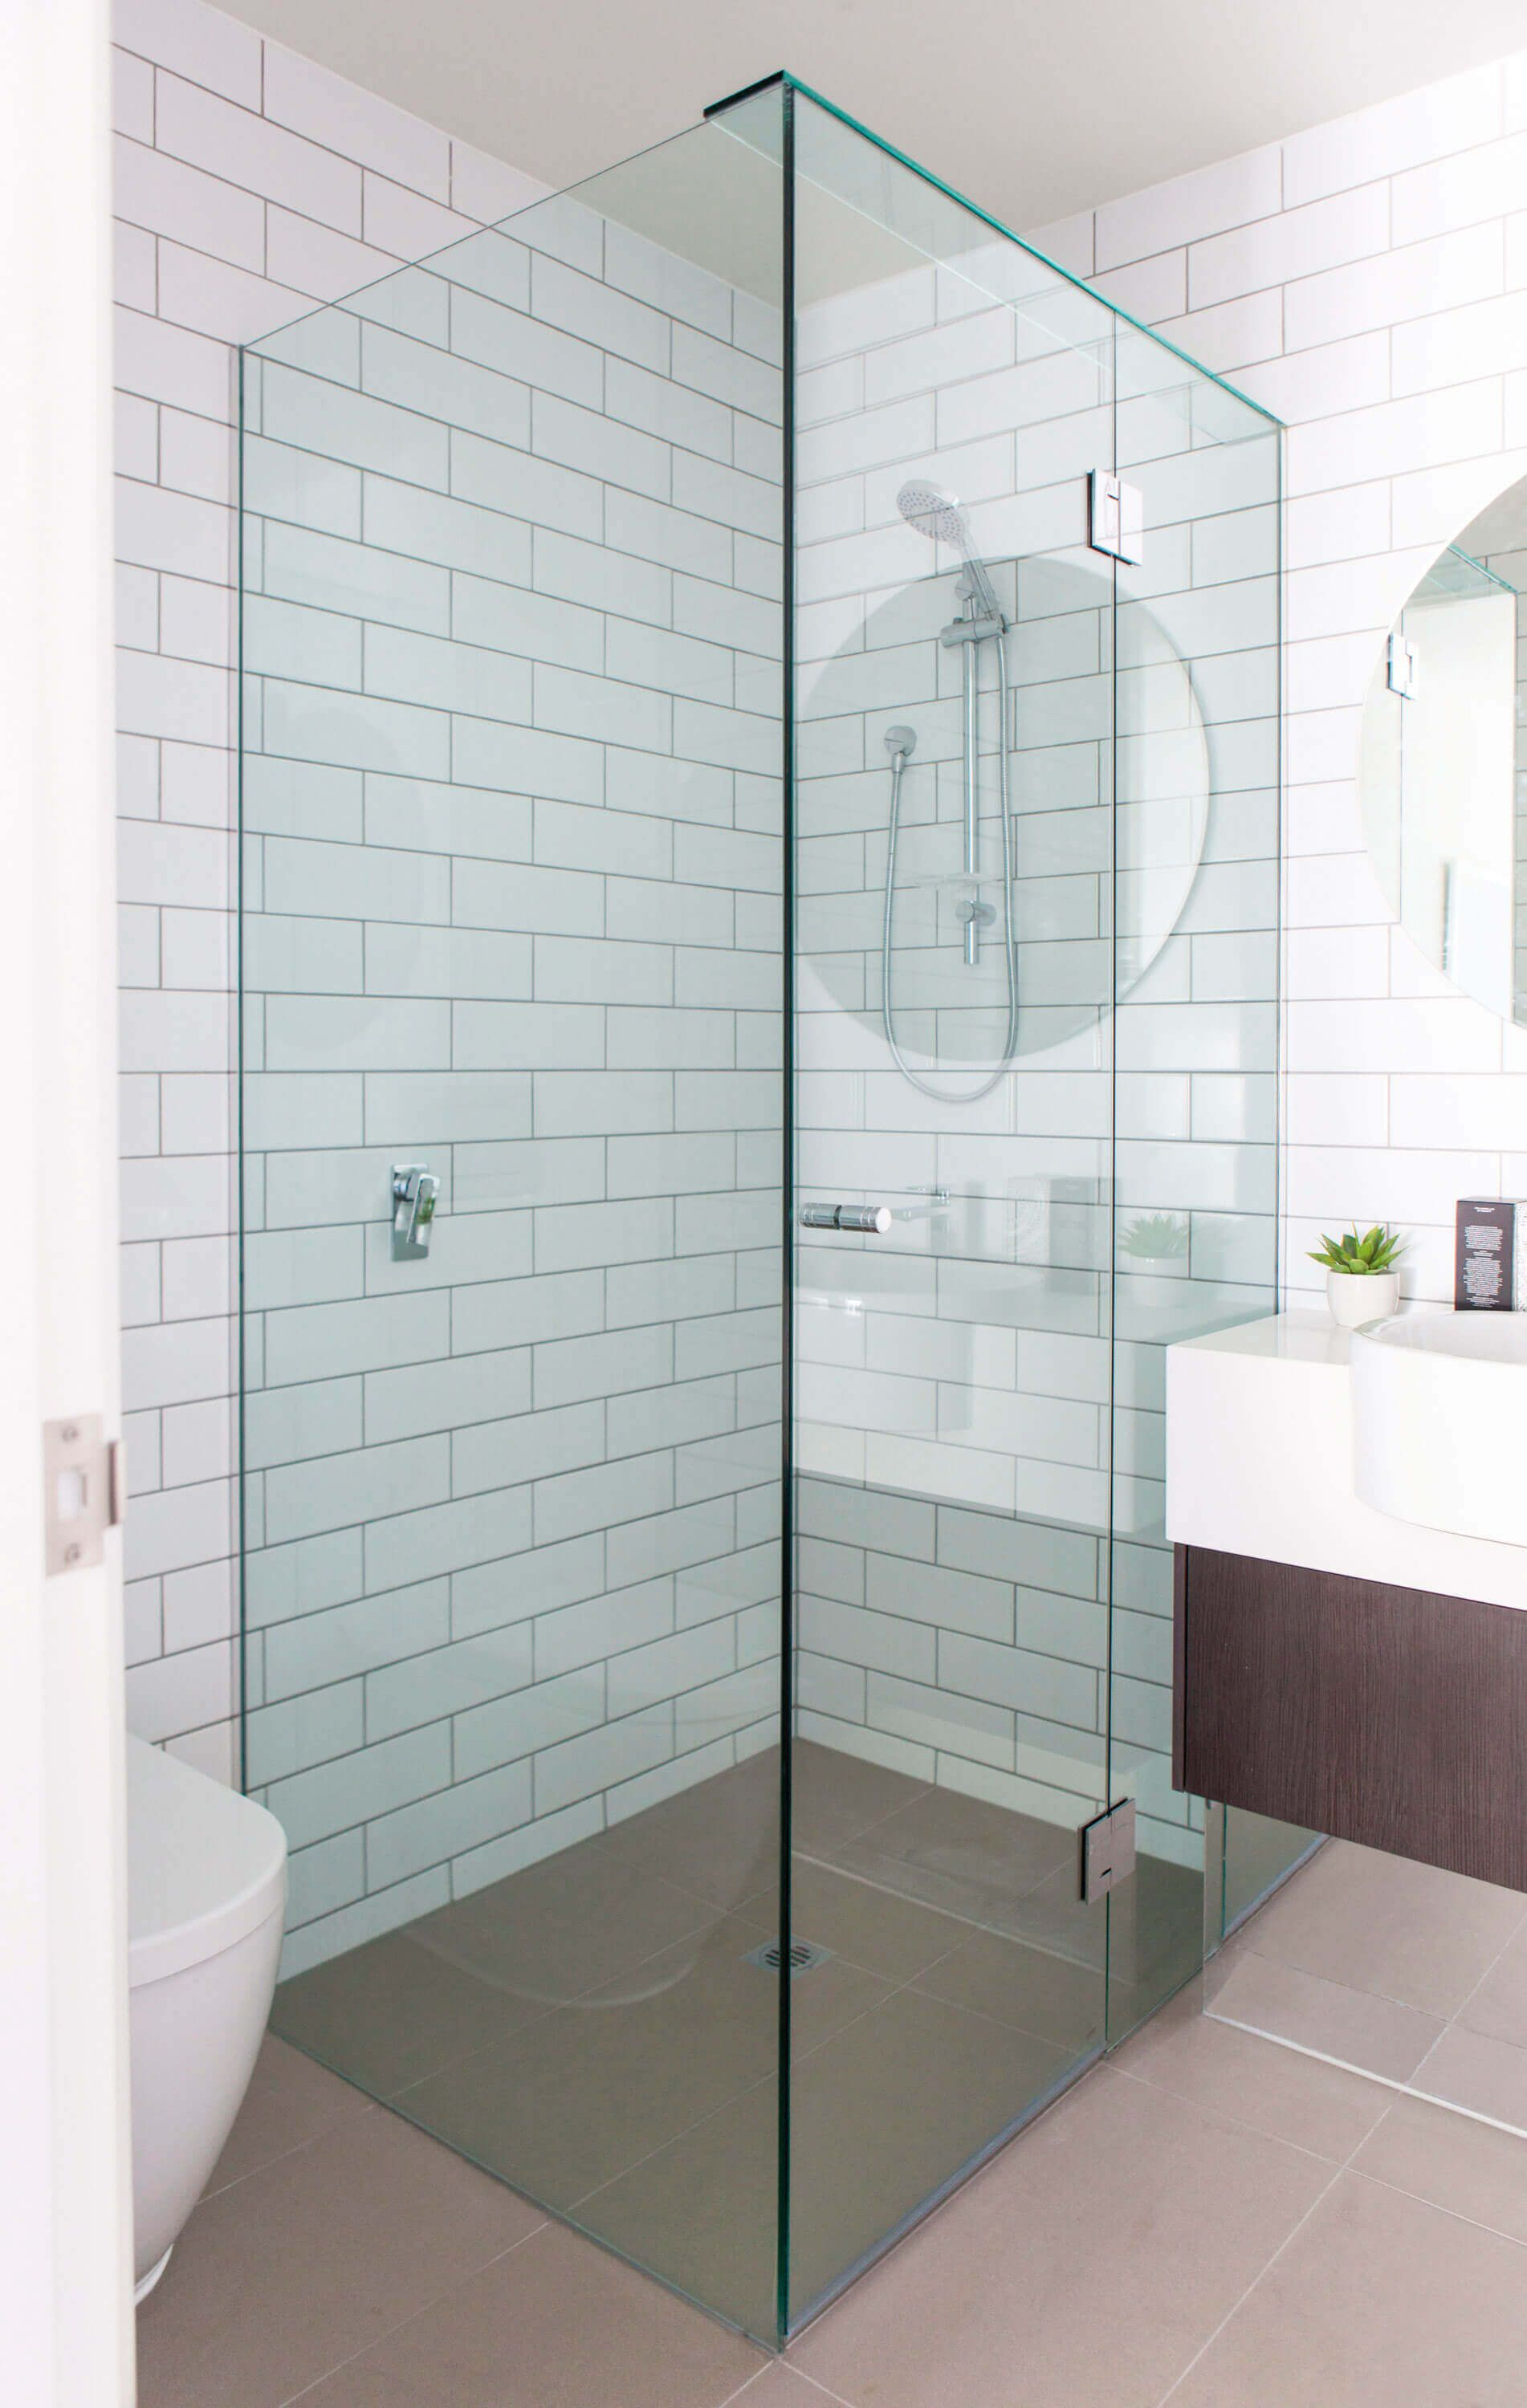 Frameless Shower Screen - Fully Frameless Shower Screens - Bathroom ...